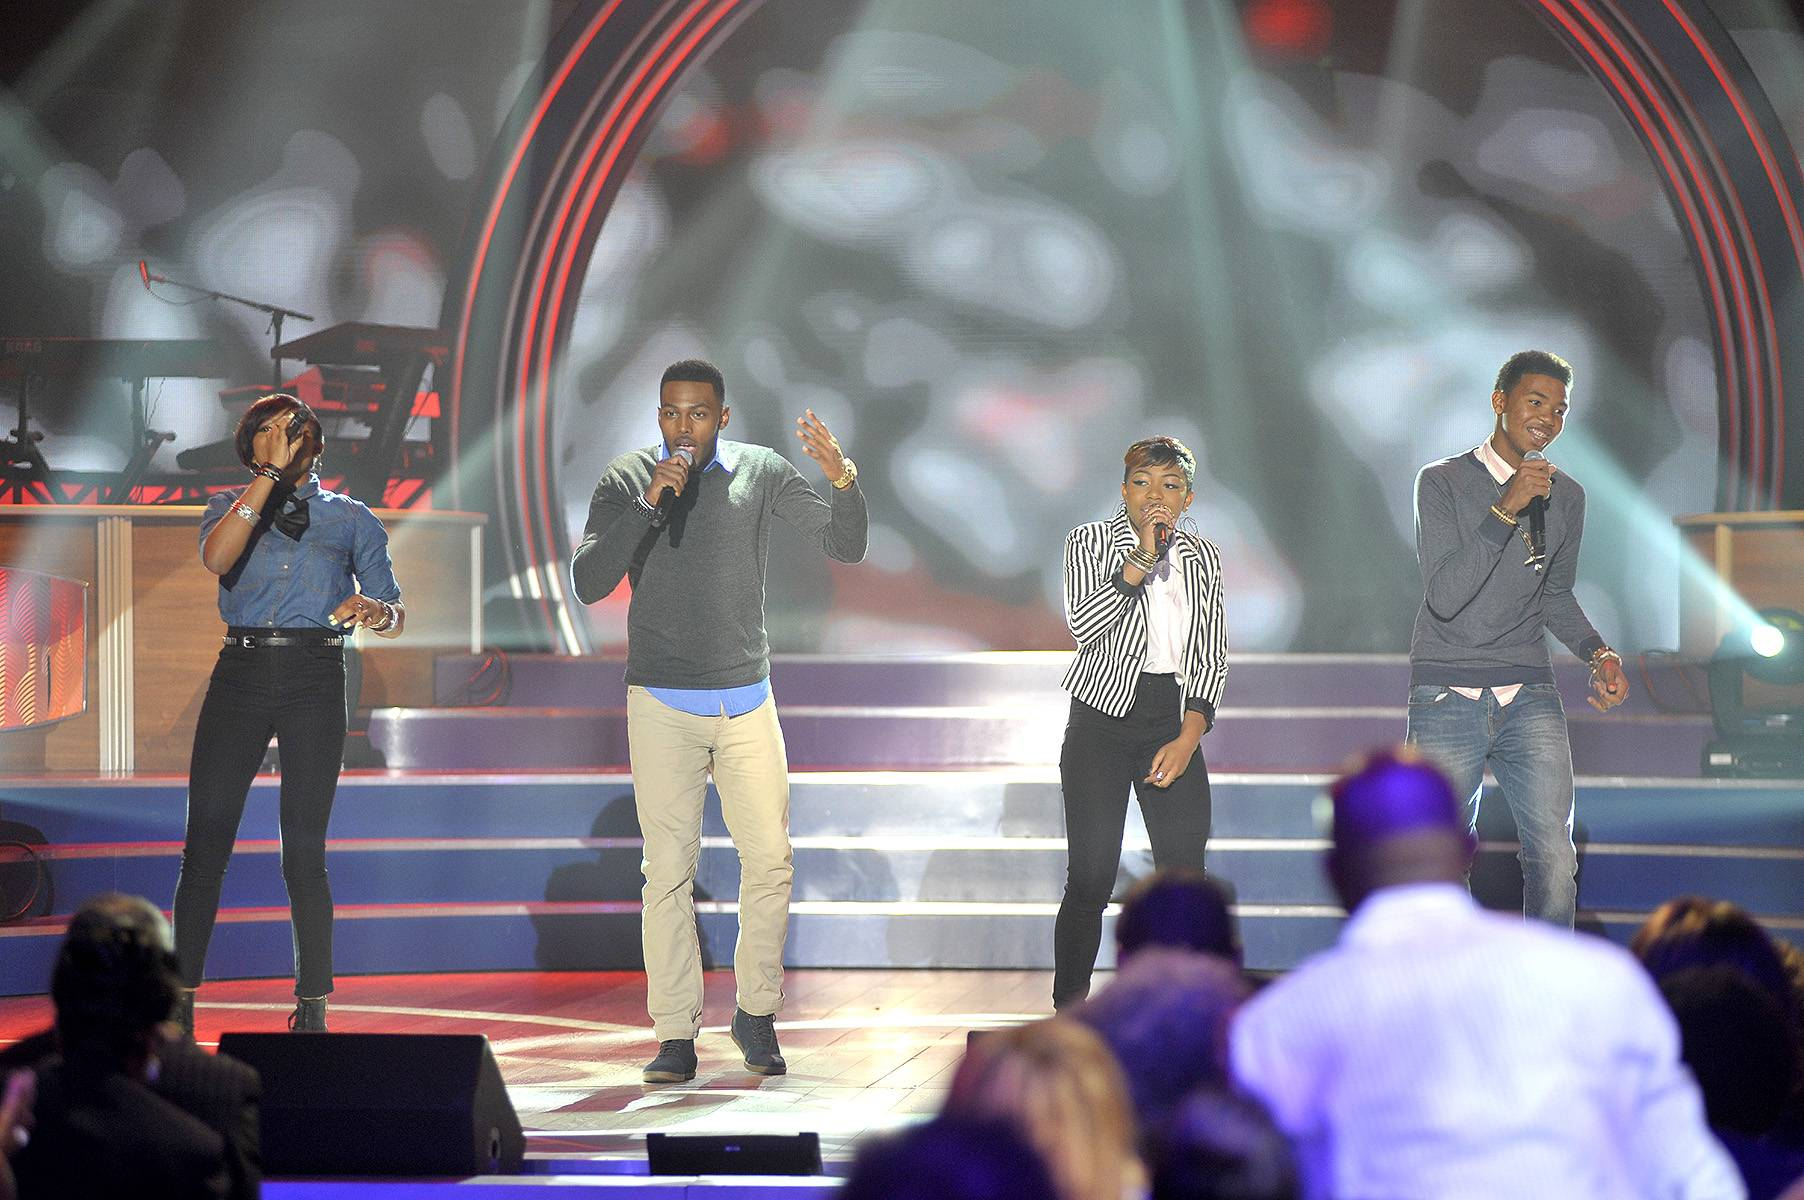 """The Walls Group - Kirk also brought along his prot?g?s, the first-ever artists signed to his Fo Yo Soul Record Label, The Walls Group. Their hit single asks if they can get some """"Love on the Radio."""" Watch them get love on TV this Sunday on an all-new Bobby Jones Gospel!  (Photo: Kris Connor/Getty Images for BET Networks)"""